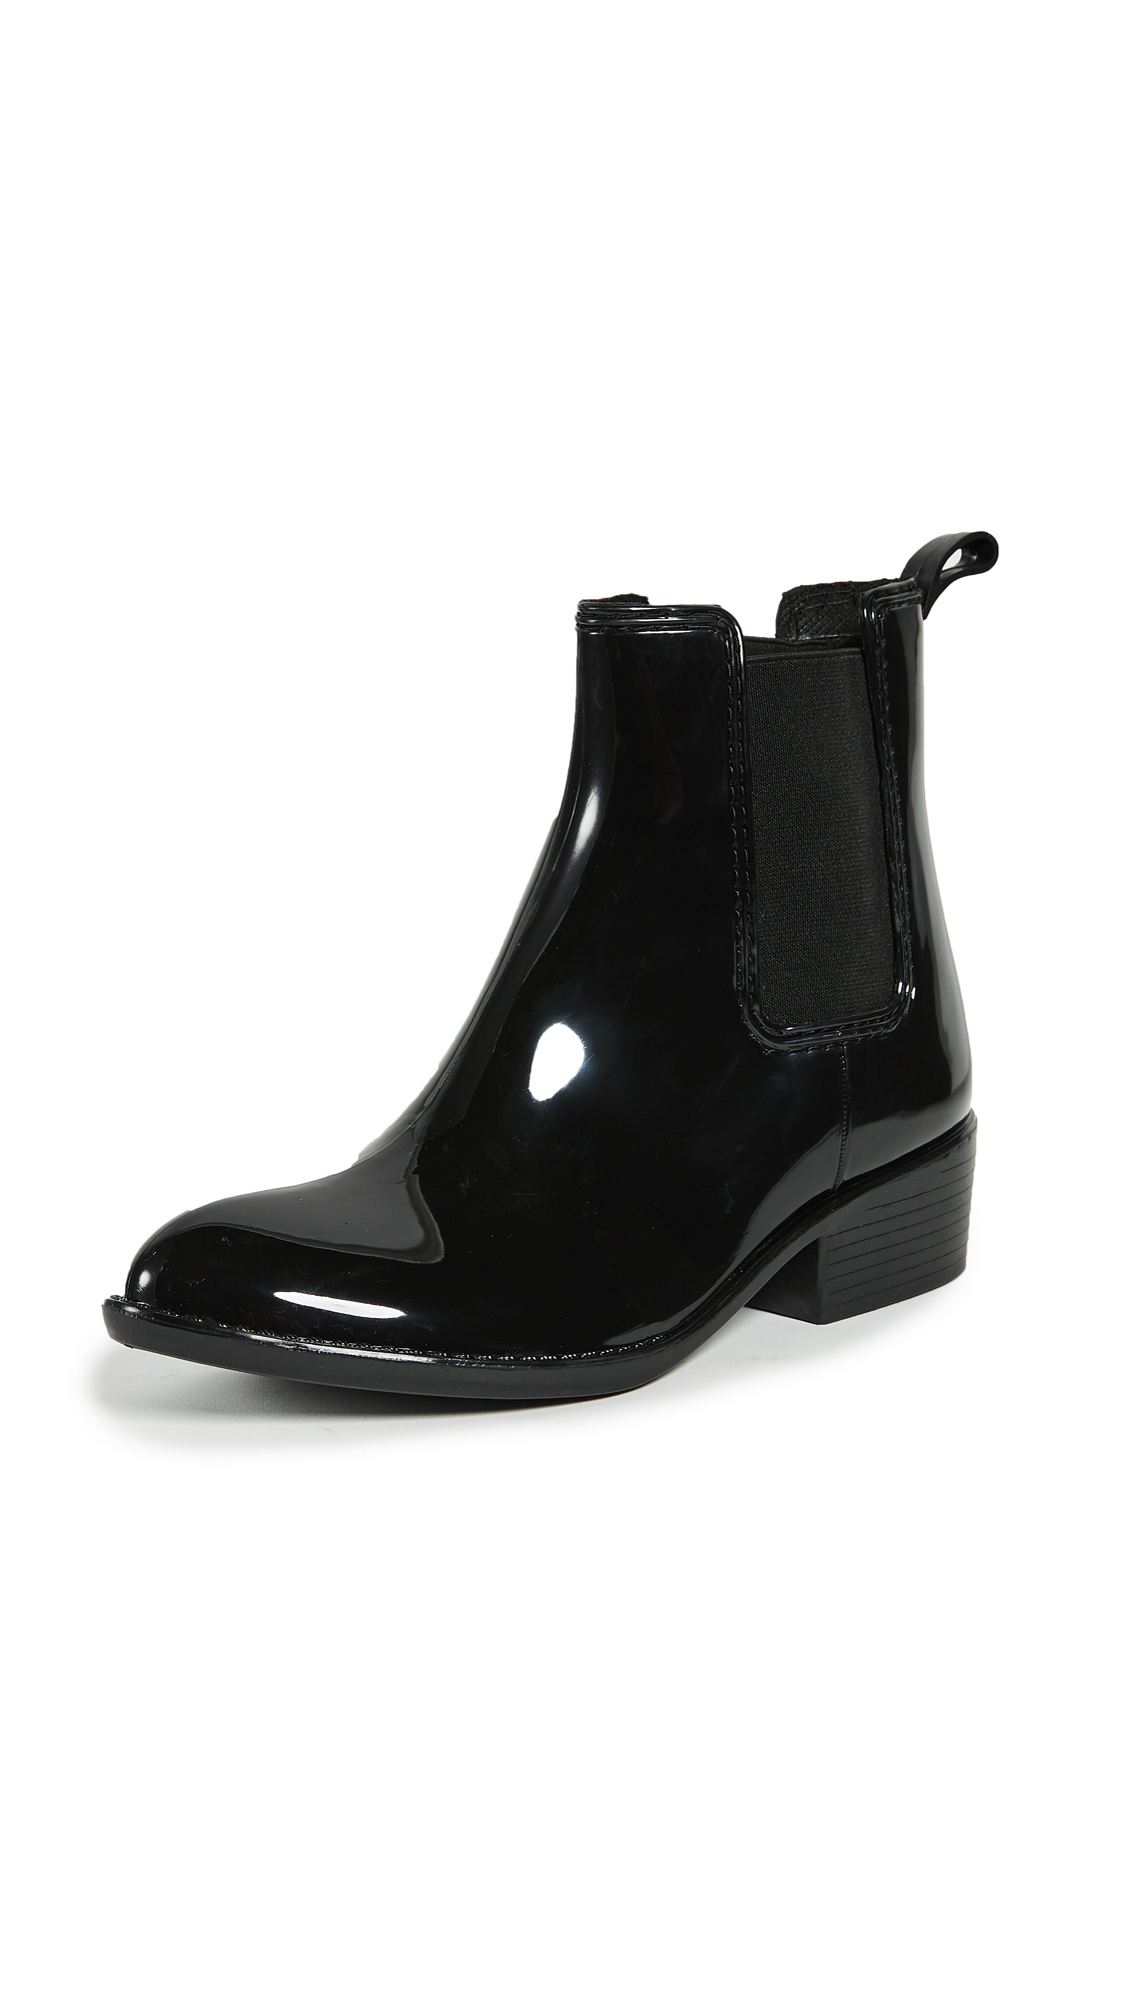 Jeffrey Campbell Stormy Rain Booties - Black